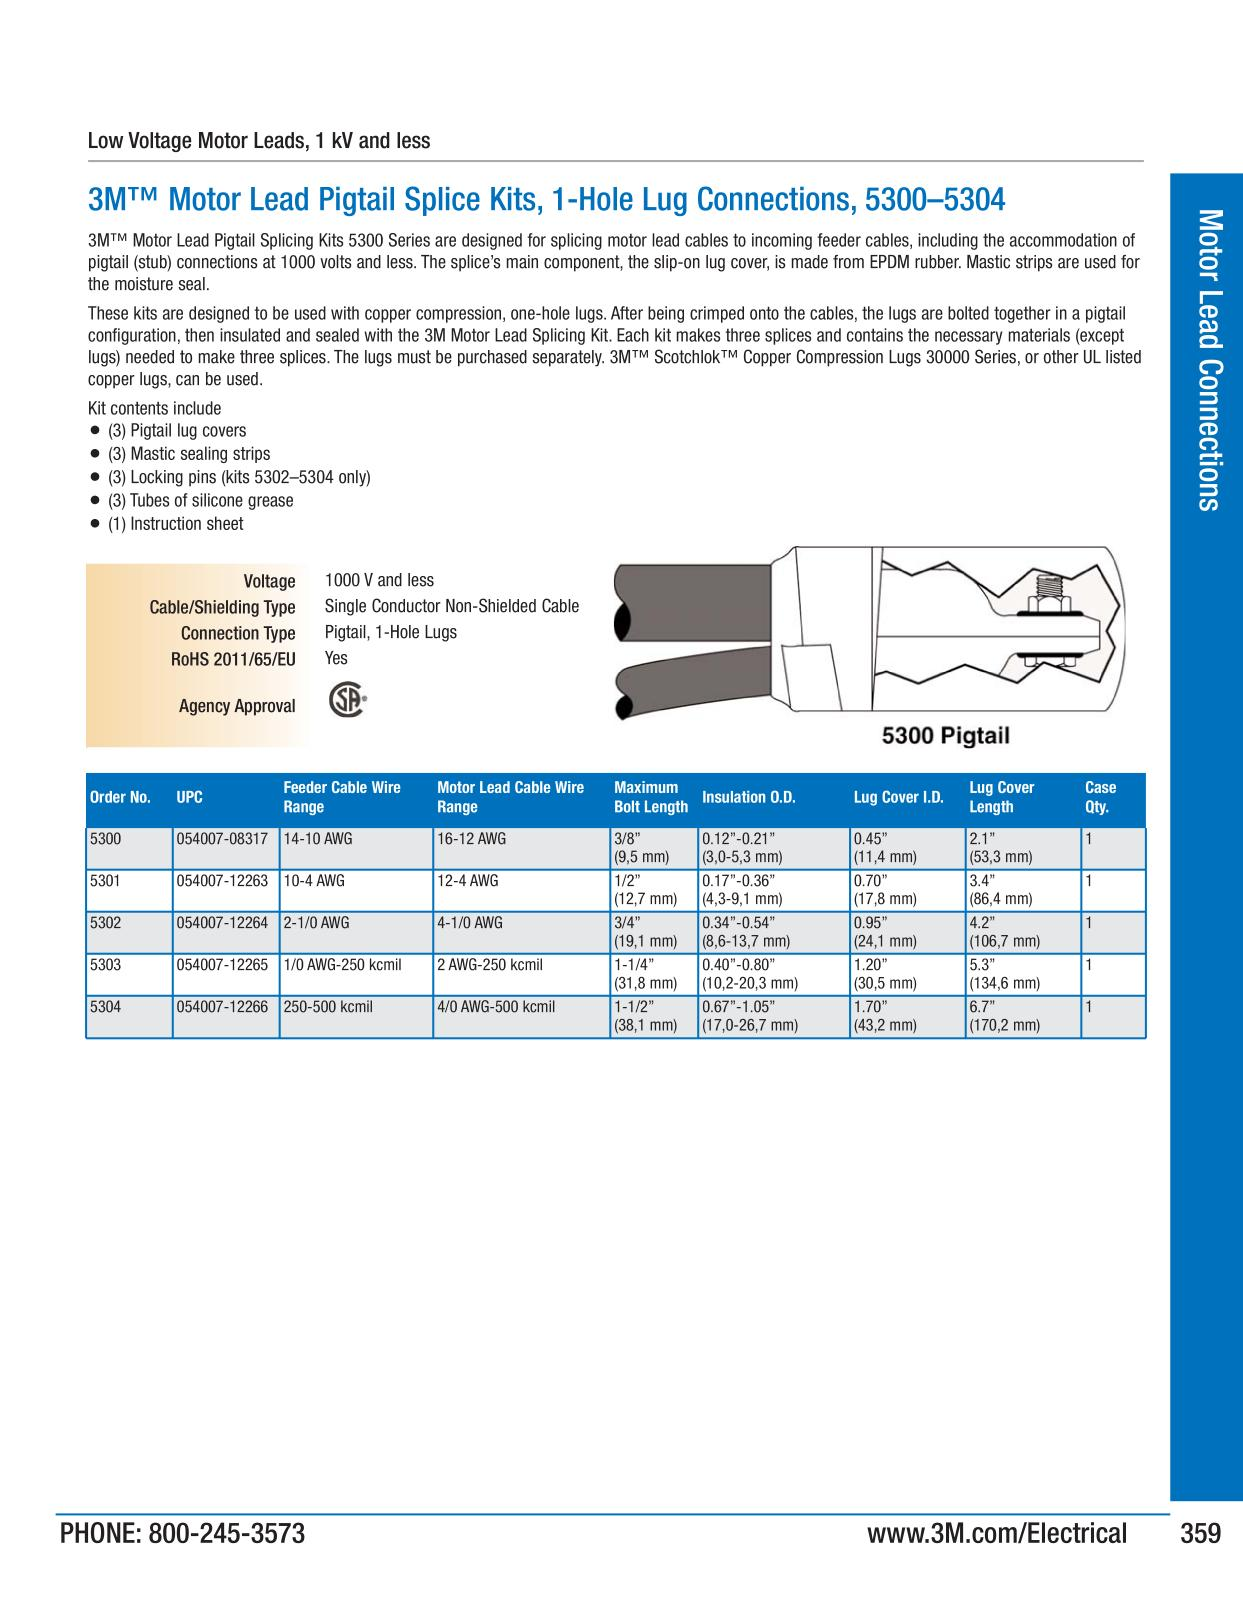 Motor lead connections 3m electrical products page 357 catalogs xflitez Choice Image